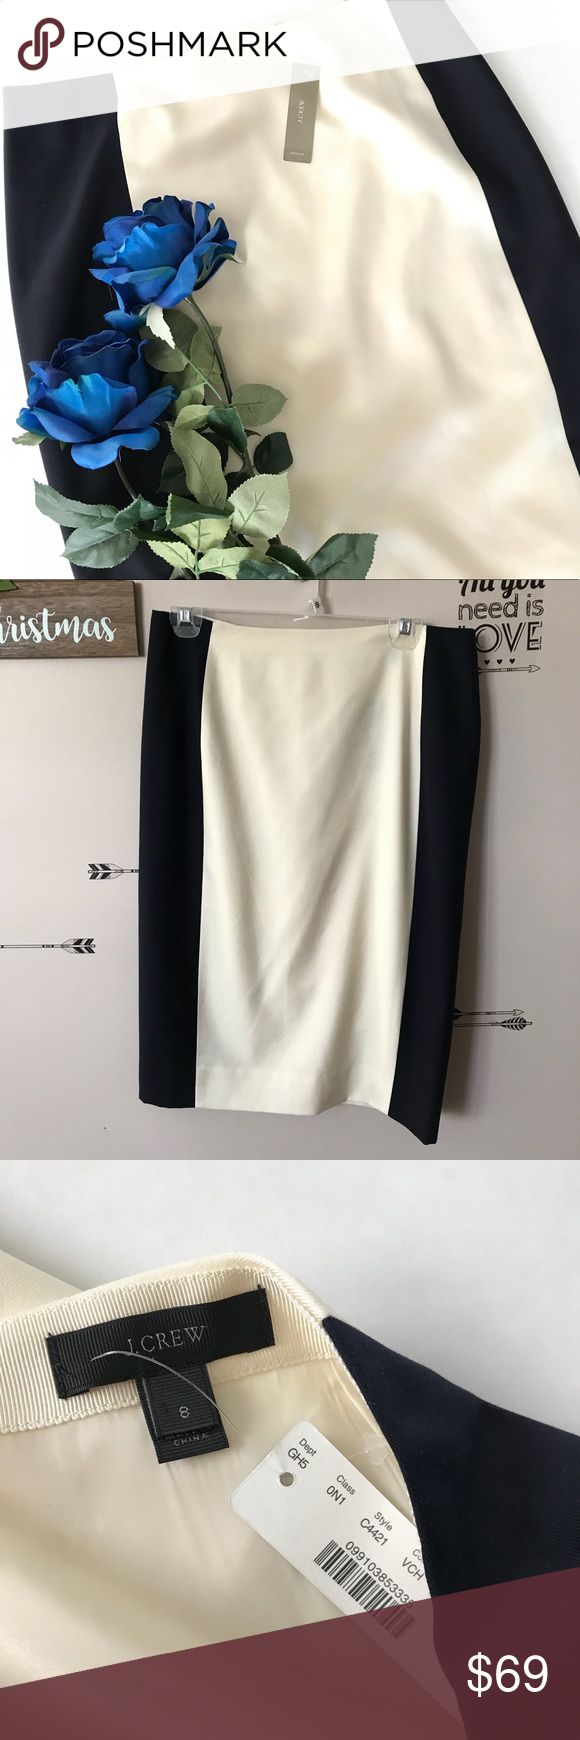 """NWT J. Crew Pencil Skirt Measures 16"""" across and is 25"""" long.   From a smoke free, pet friendly home.   All offers considered, or bundle your likes for a discount 👗 J. Crew Skirts Pencil"""